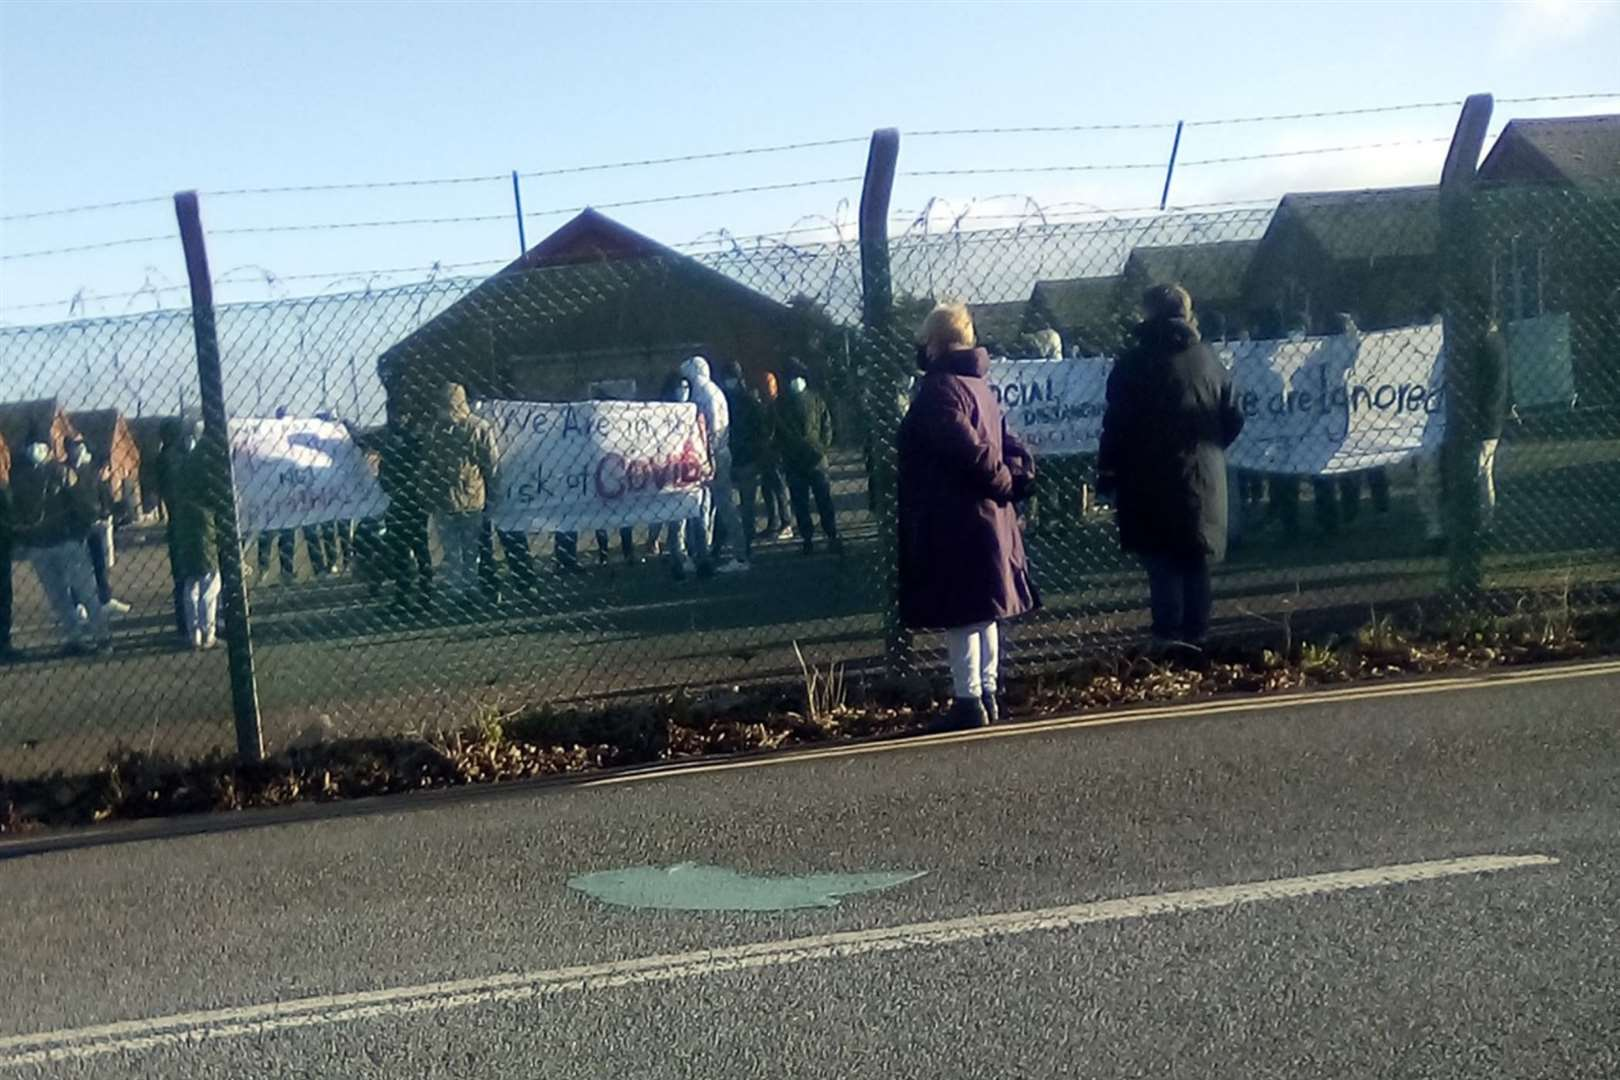 People seeking asylum protesting at Napier Barracks